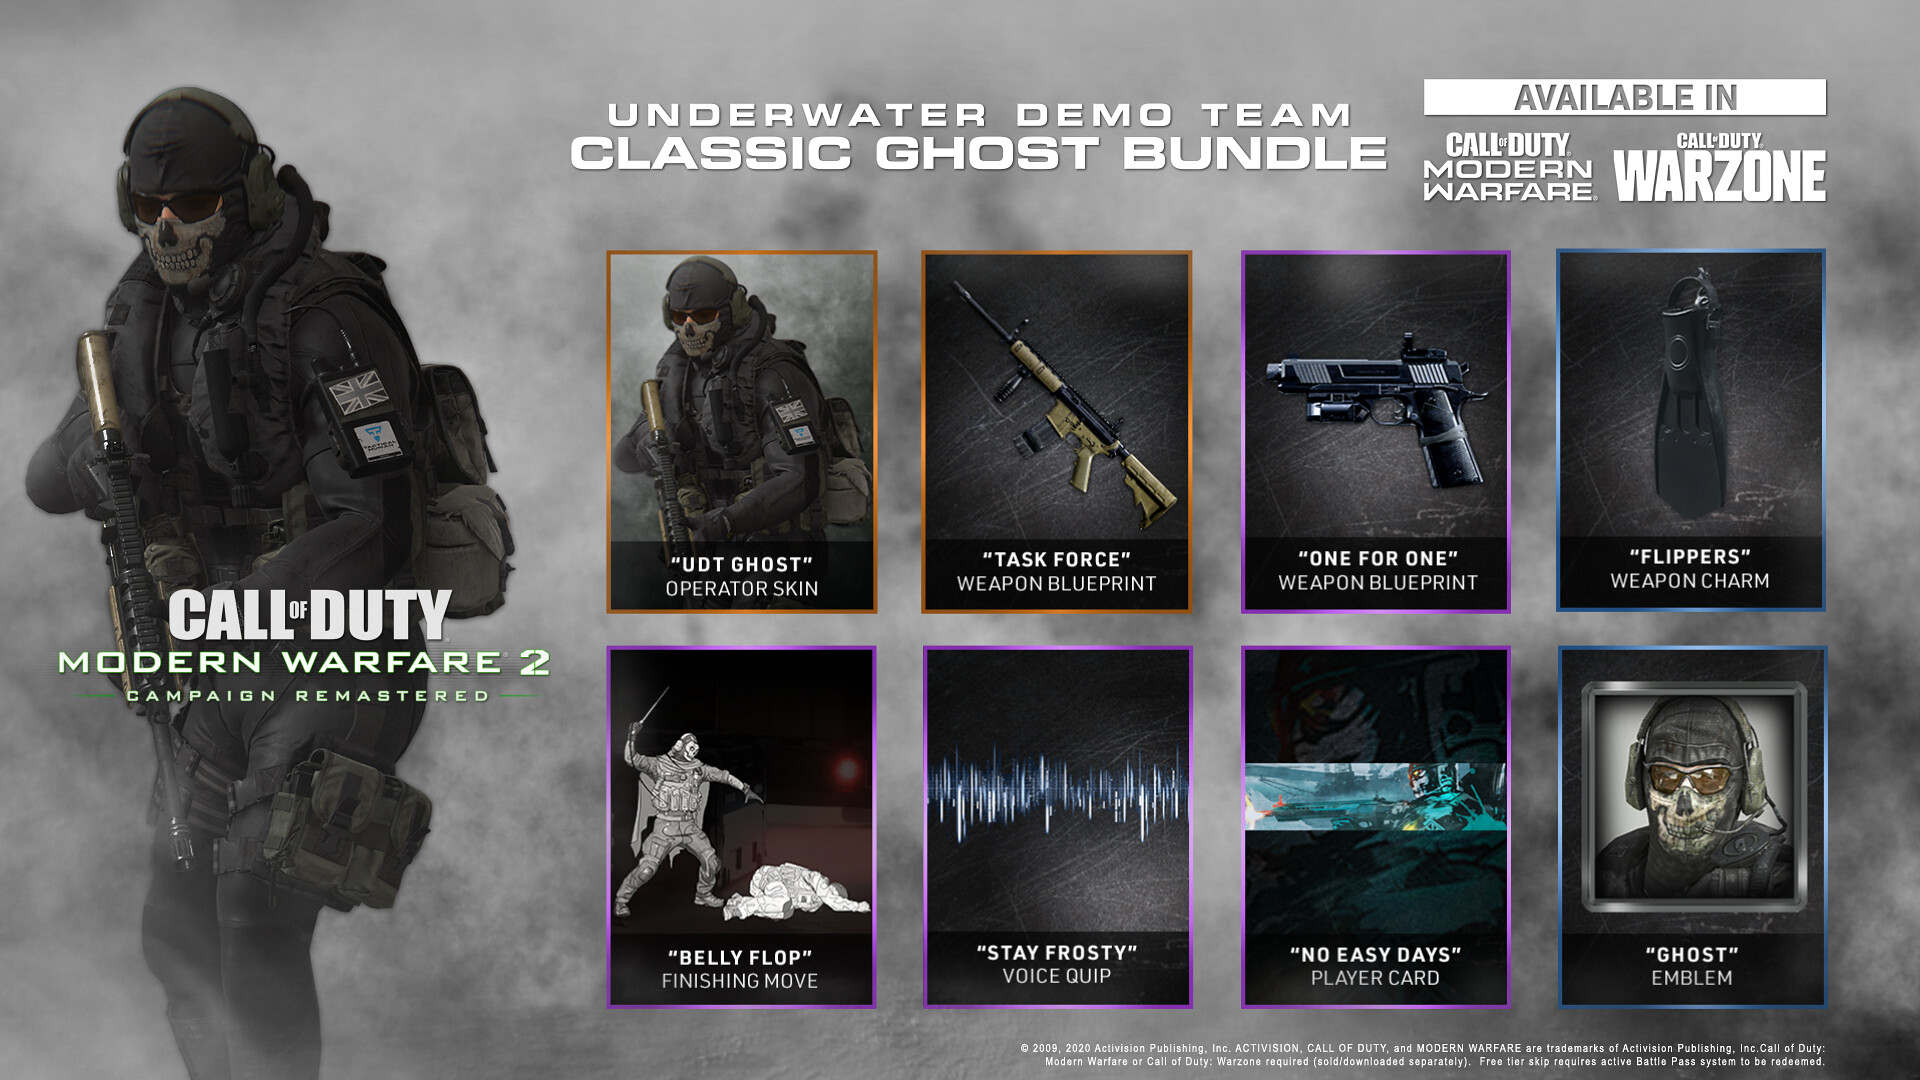 Call of Duty: Modern Warfare 2 Campaign Remastered - Underwater Demo Team Classic Ghost Bundle for Modern Warfare on PS4